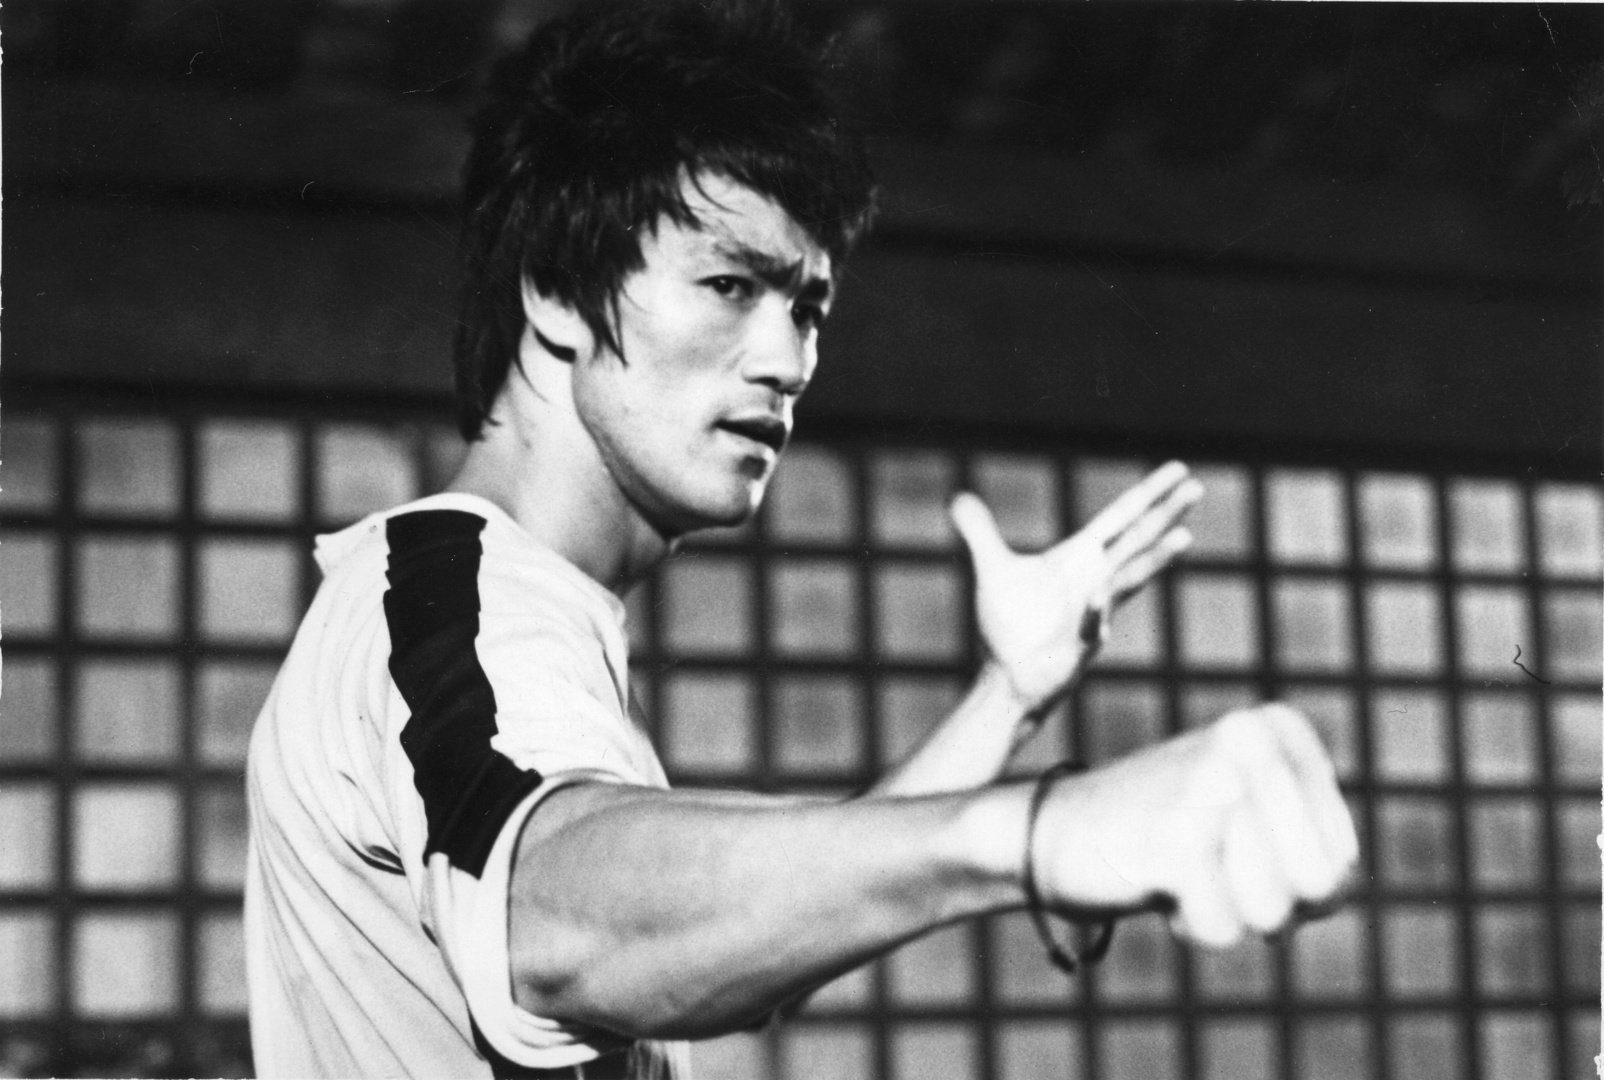 brucelee-×1080-wallpaper-wpc5803066